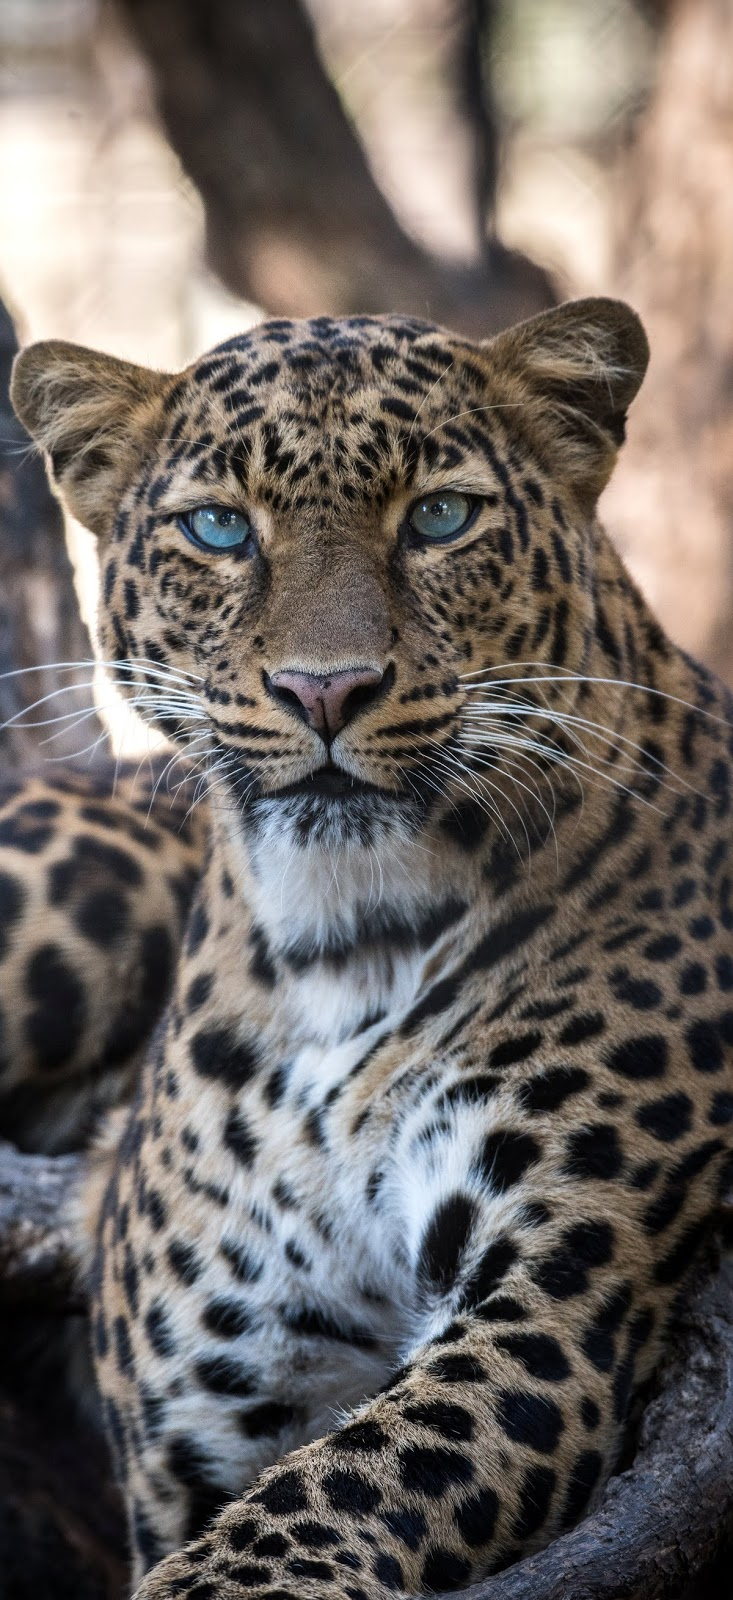 Portrait of a jaguar.